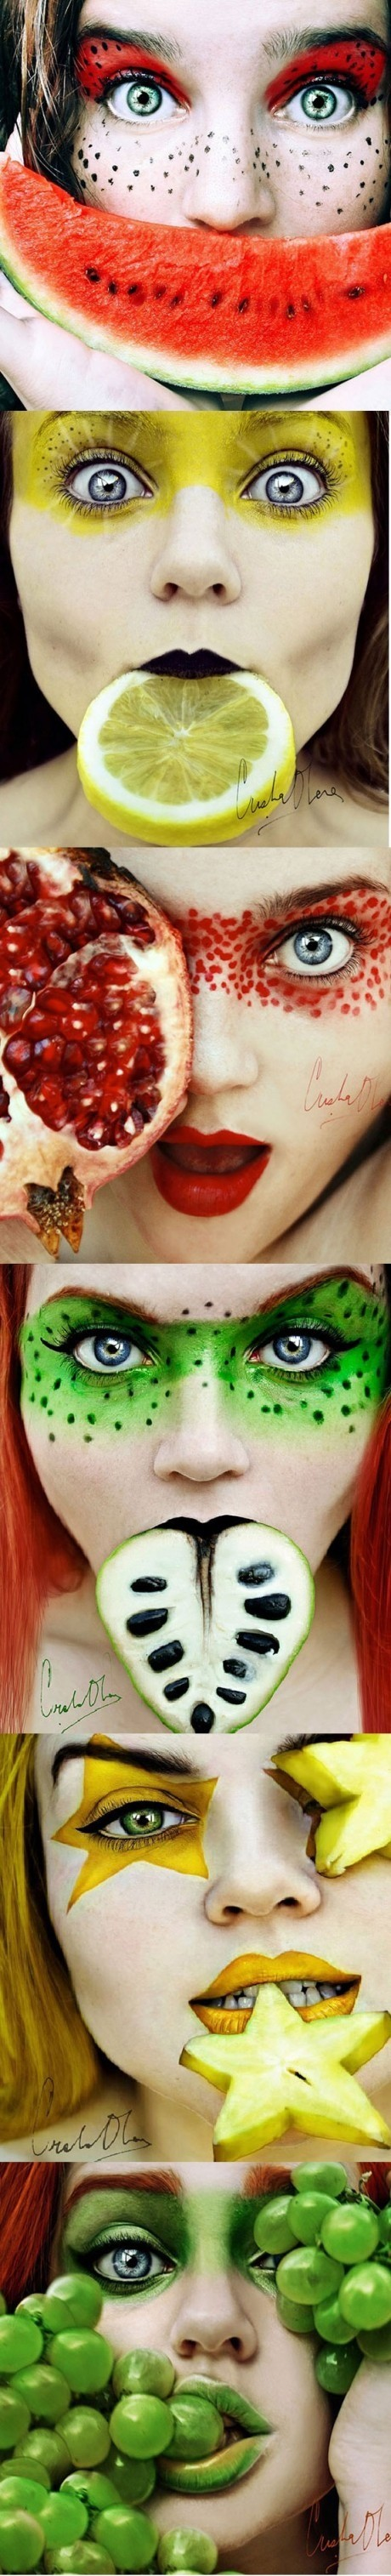 Face & fruits